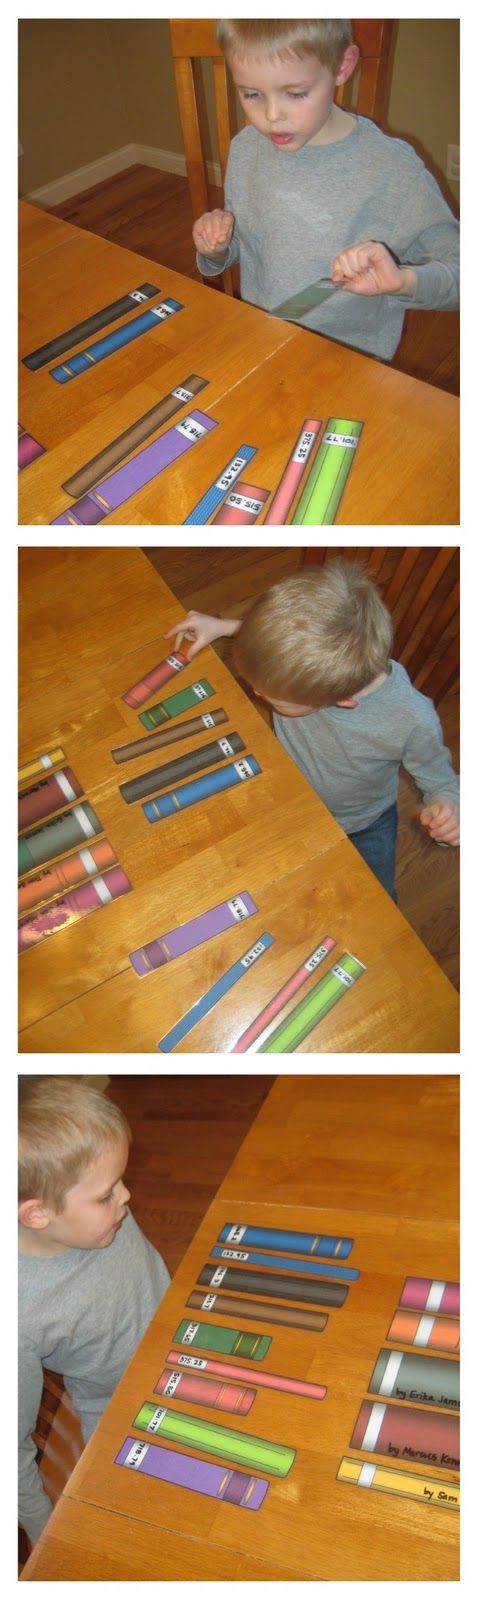 "Let's Play Library! [An Alphabetizing & Sequencing Activity] Link has printable ""books"" for the activity. Elementary Library activity."